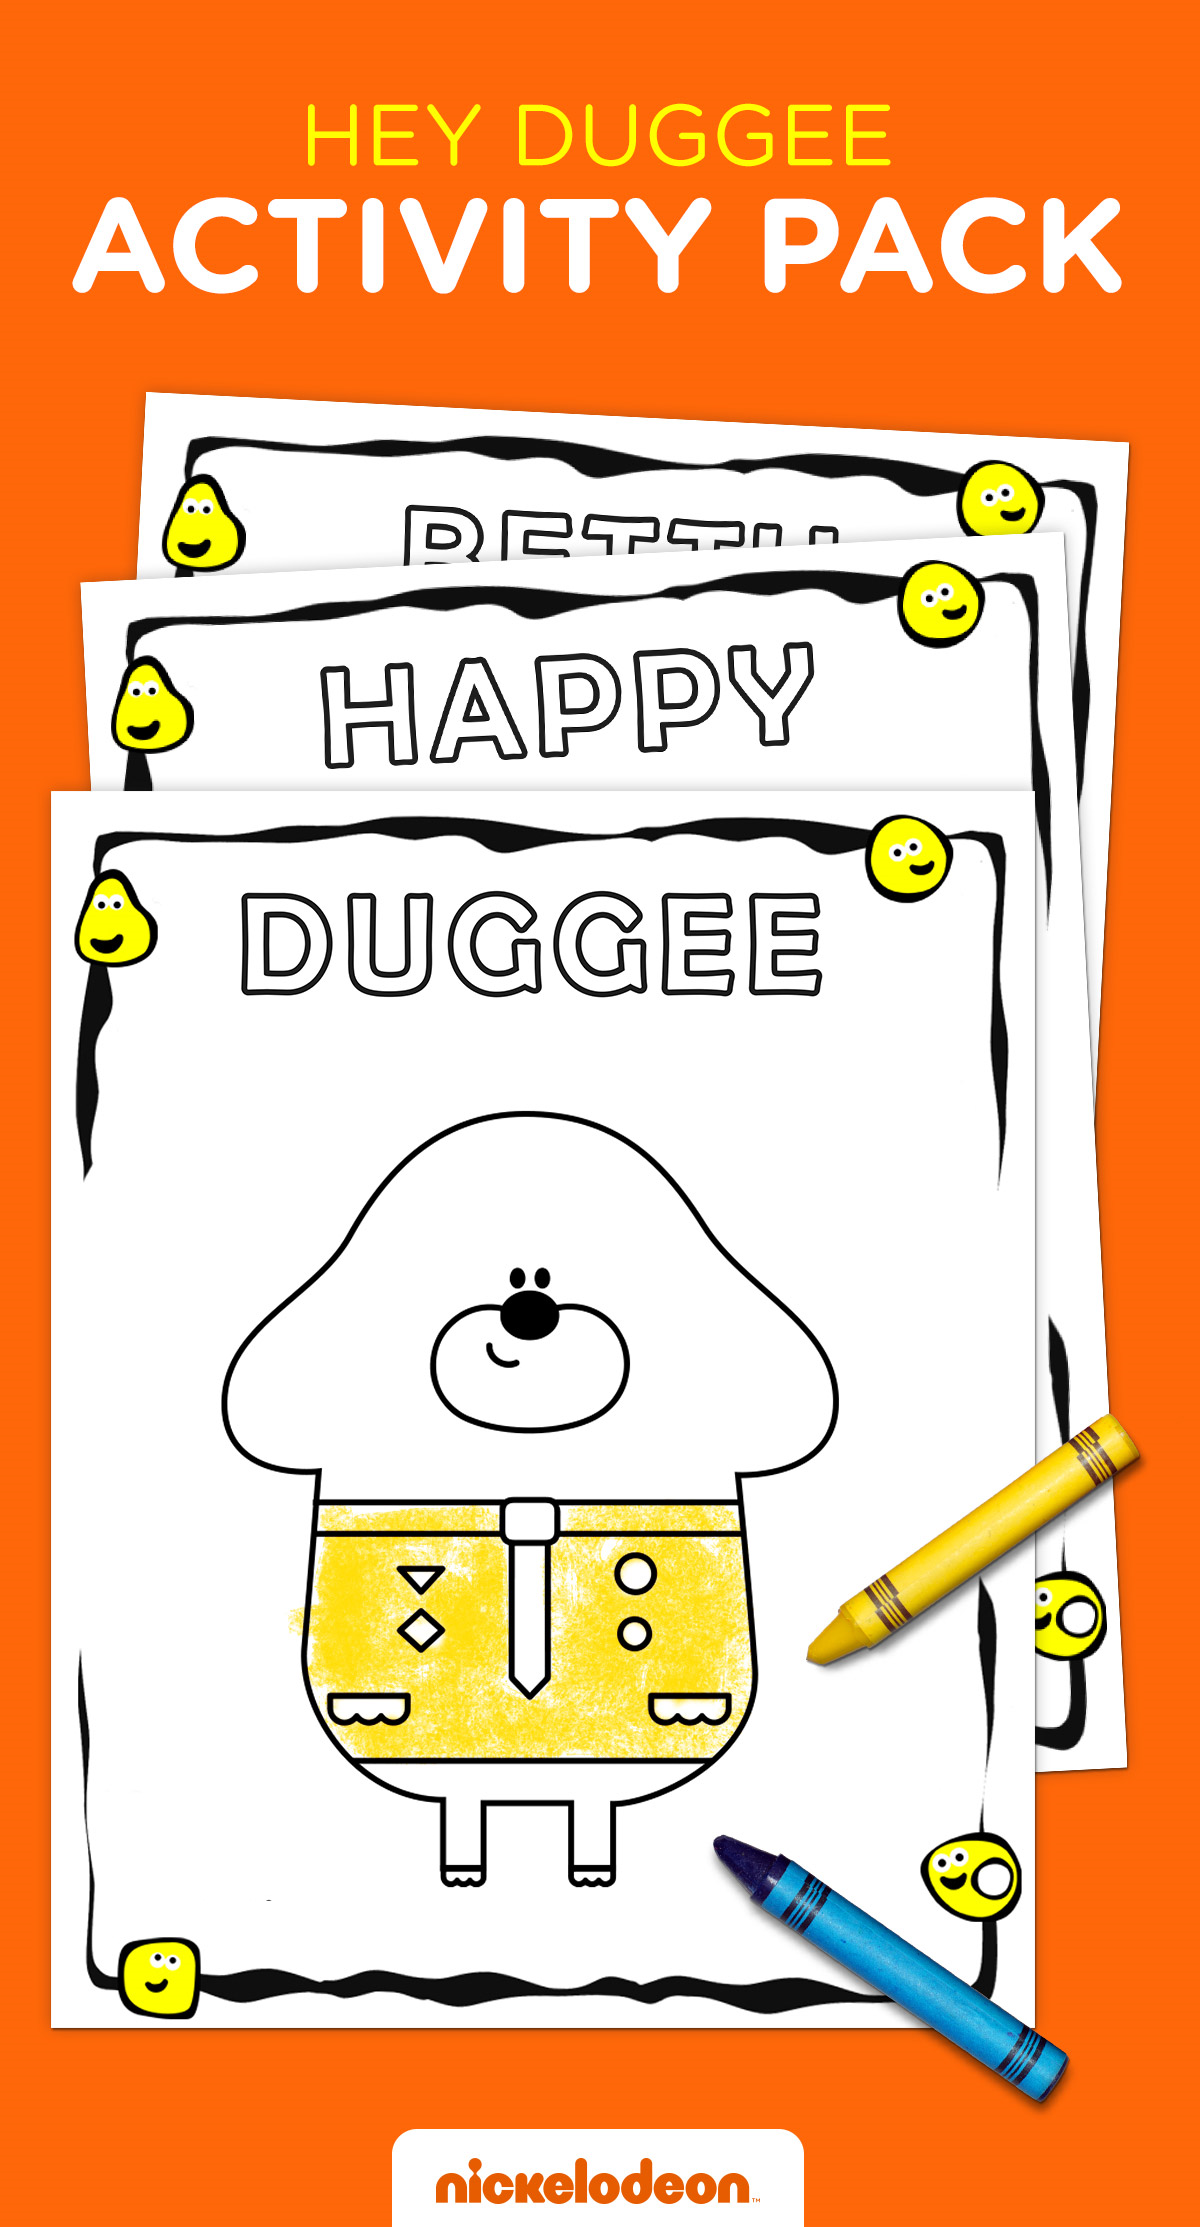 Hey Duggee Activity Pack Birthday Party Planner